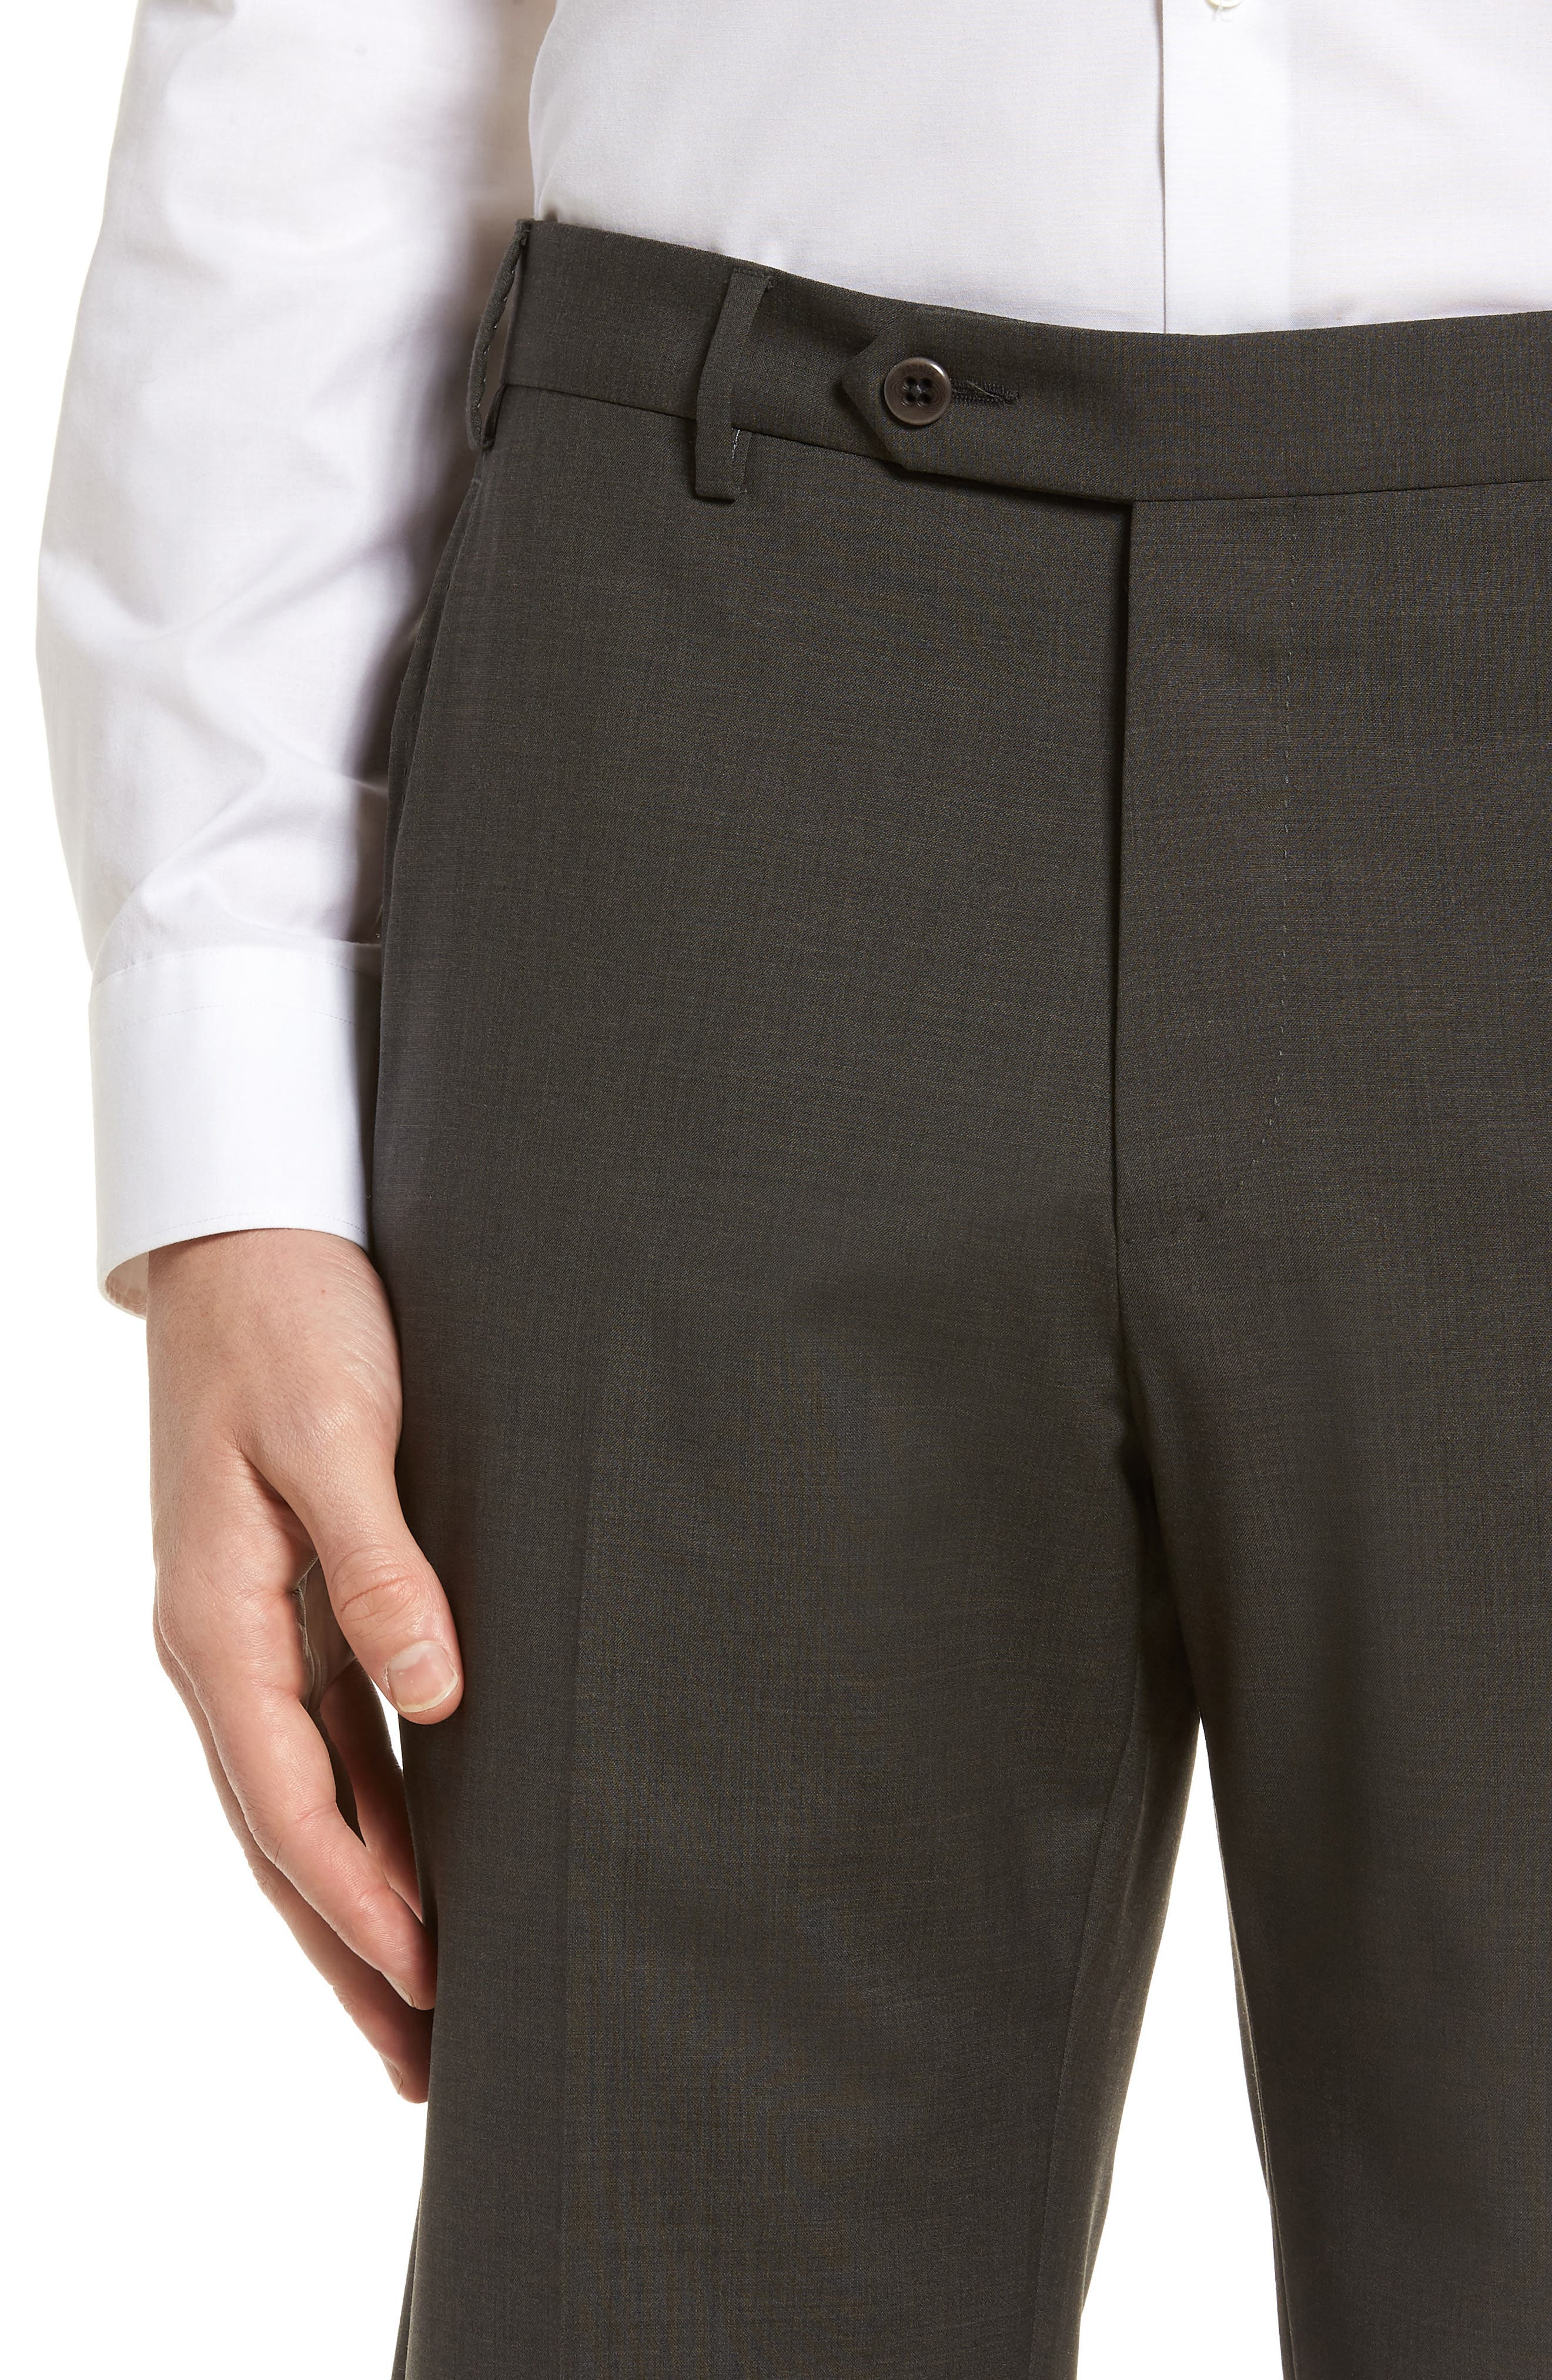 Devon Flat Front Solid Wool Trousers,                             Alternate thumbnail 4, color,                             Olive